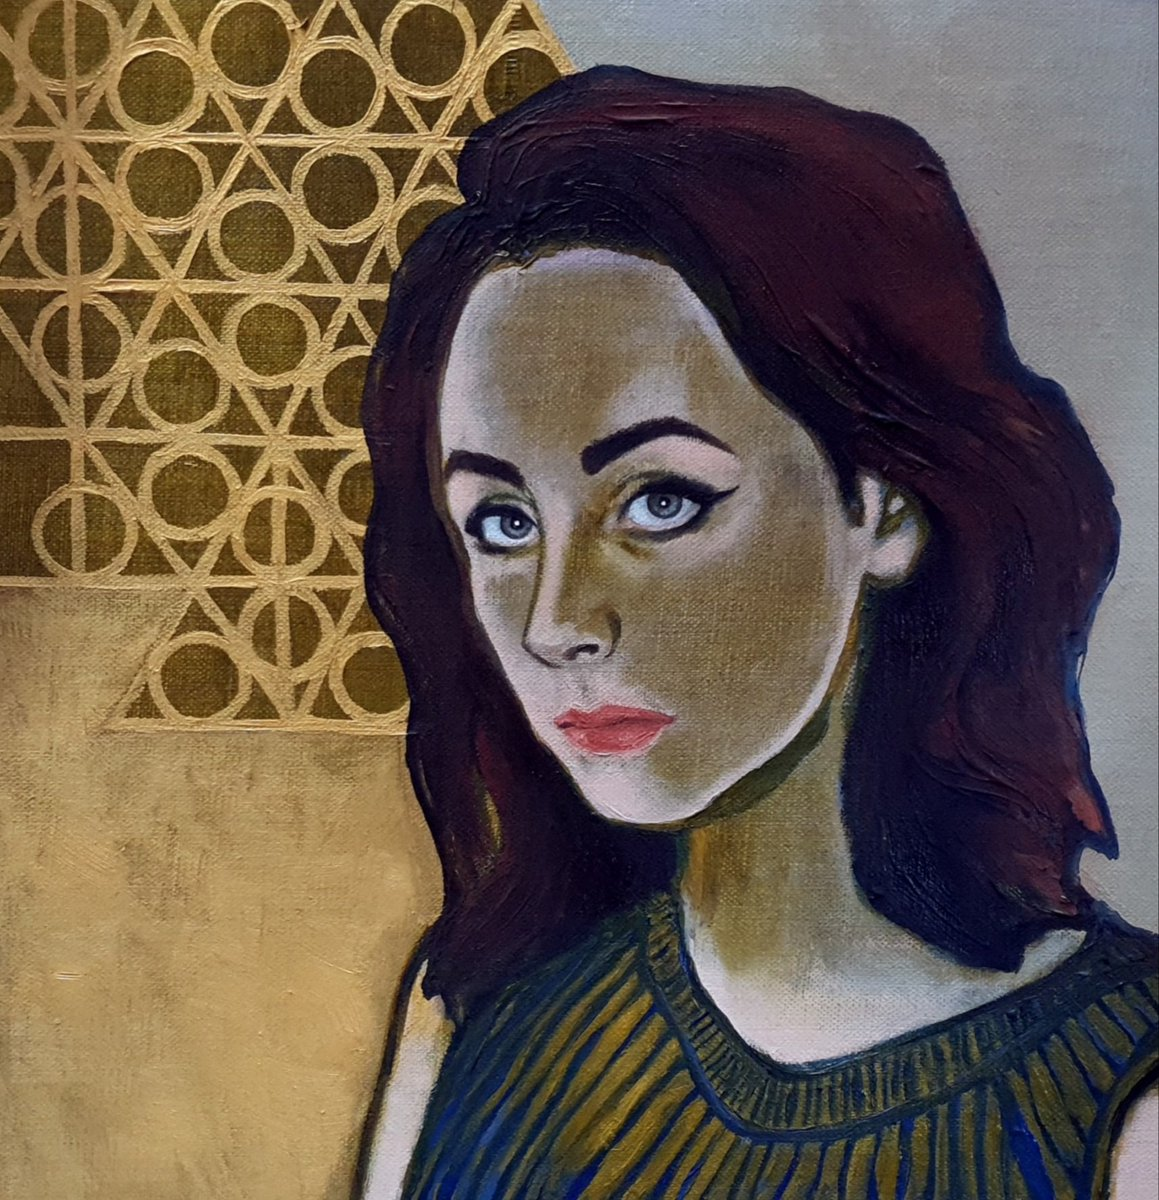 'Matilda': oil on linen canvas board (30cmx30cm). Fourth in a series of portraits using a limited palette and completion of the work in under 20 hours.  #portraitpainting #oilpainting #womenartists #painting #portraiture #lockdownportraits #contemporaryart https://t.co/ZZDg0KCMU8